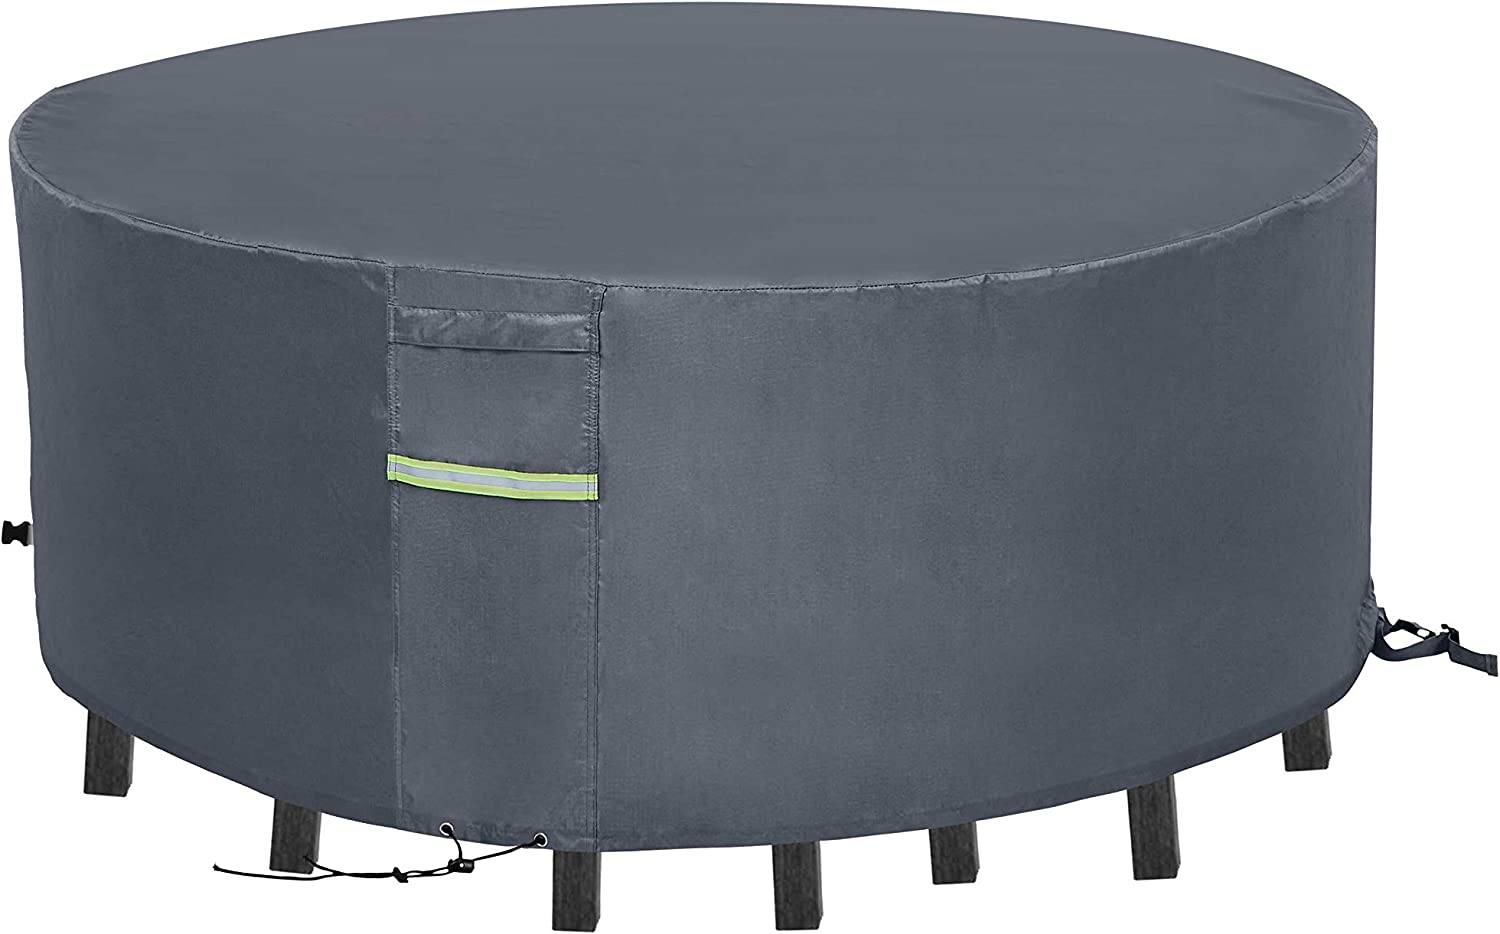 CHENHAO Patio Table Cover Round 39 inch Waterproof 600D Heavy Duty Outdoor Patio Furniture Cover Grey …